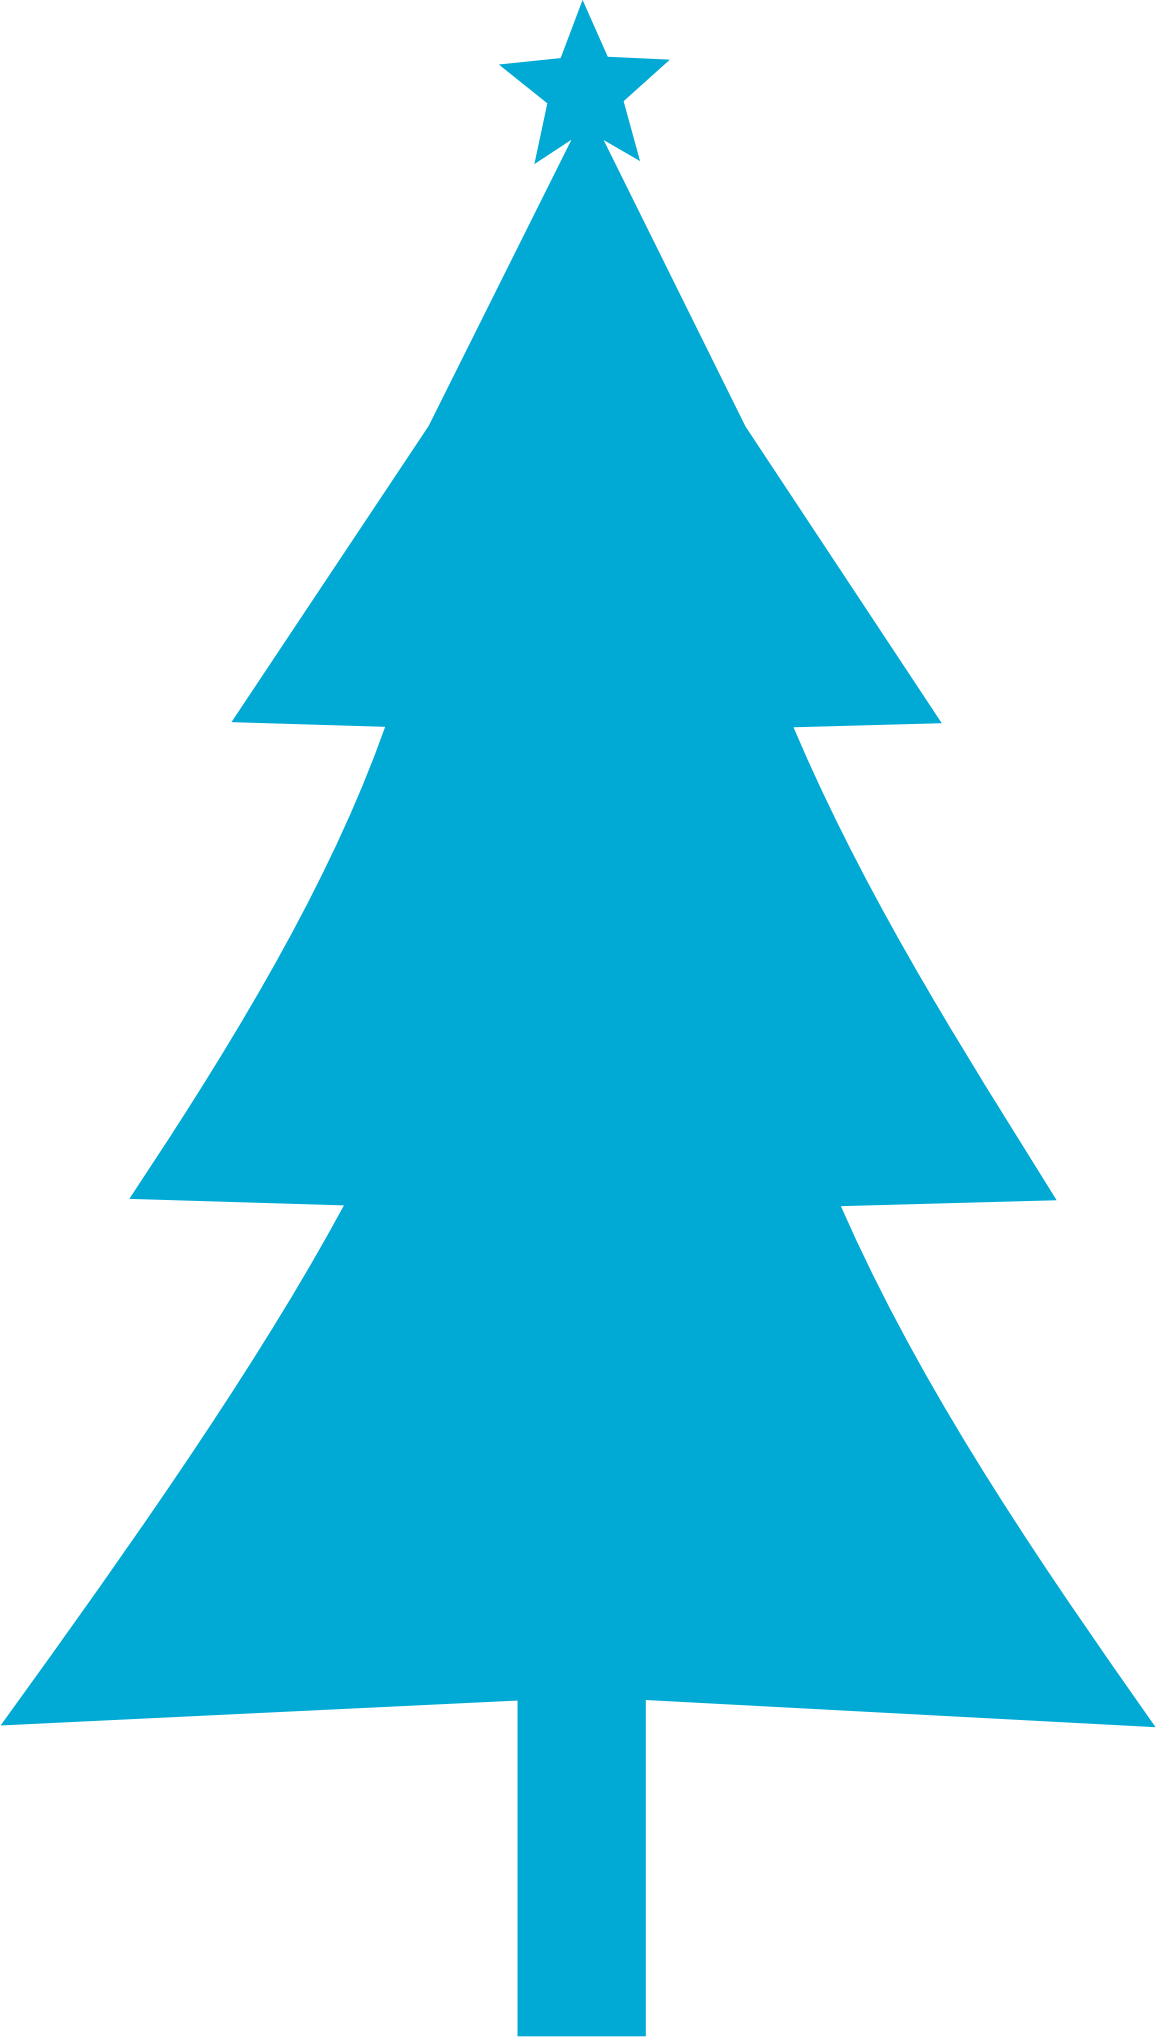 Tall Christmas Tree Clipart.Christmas Trees Silhouette At Getdrawings Com Free For